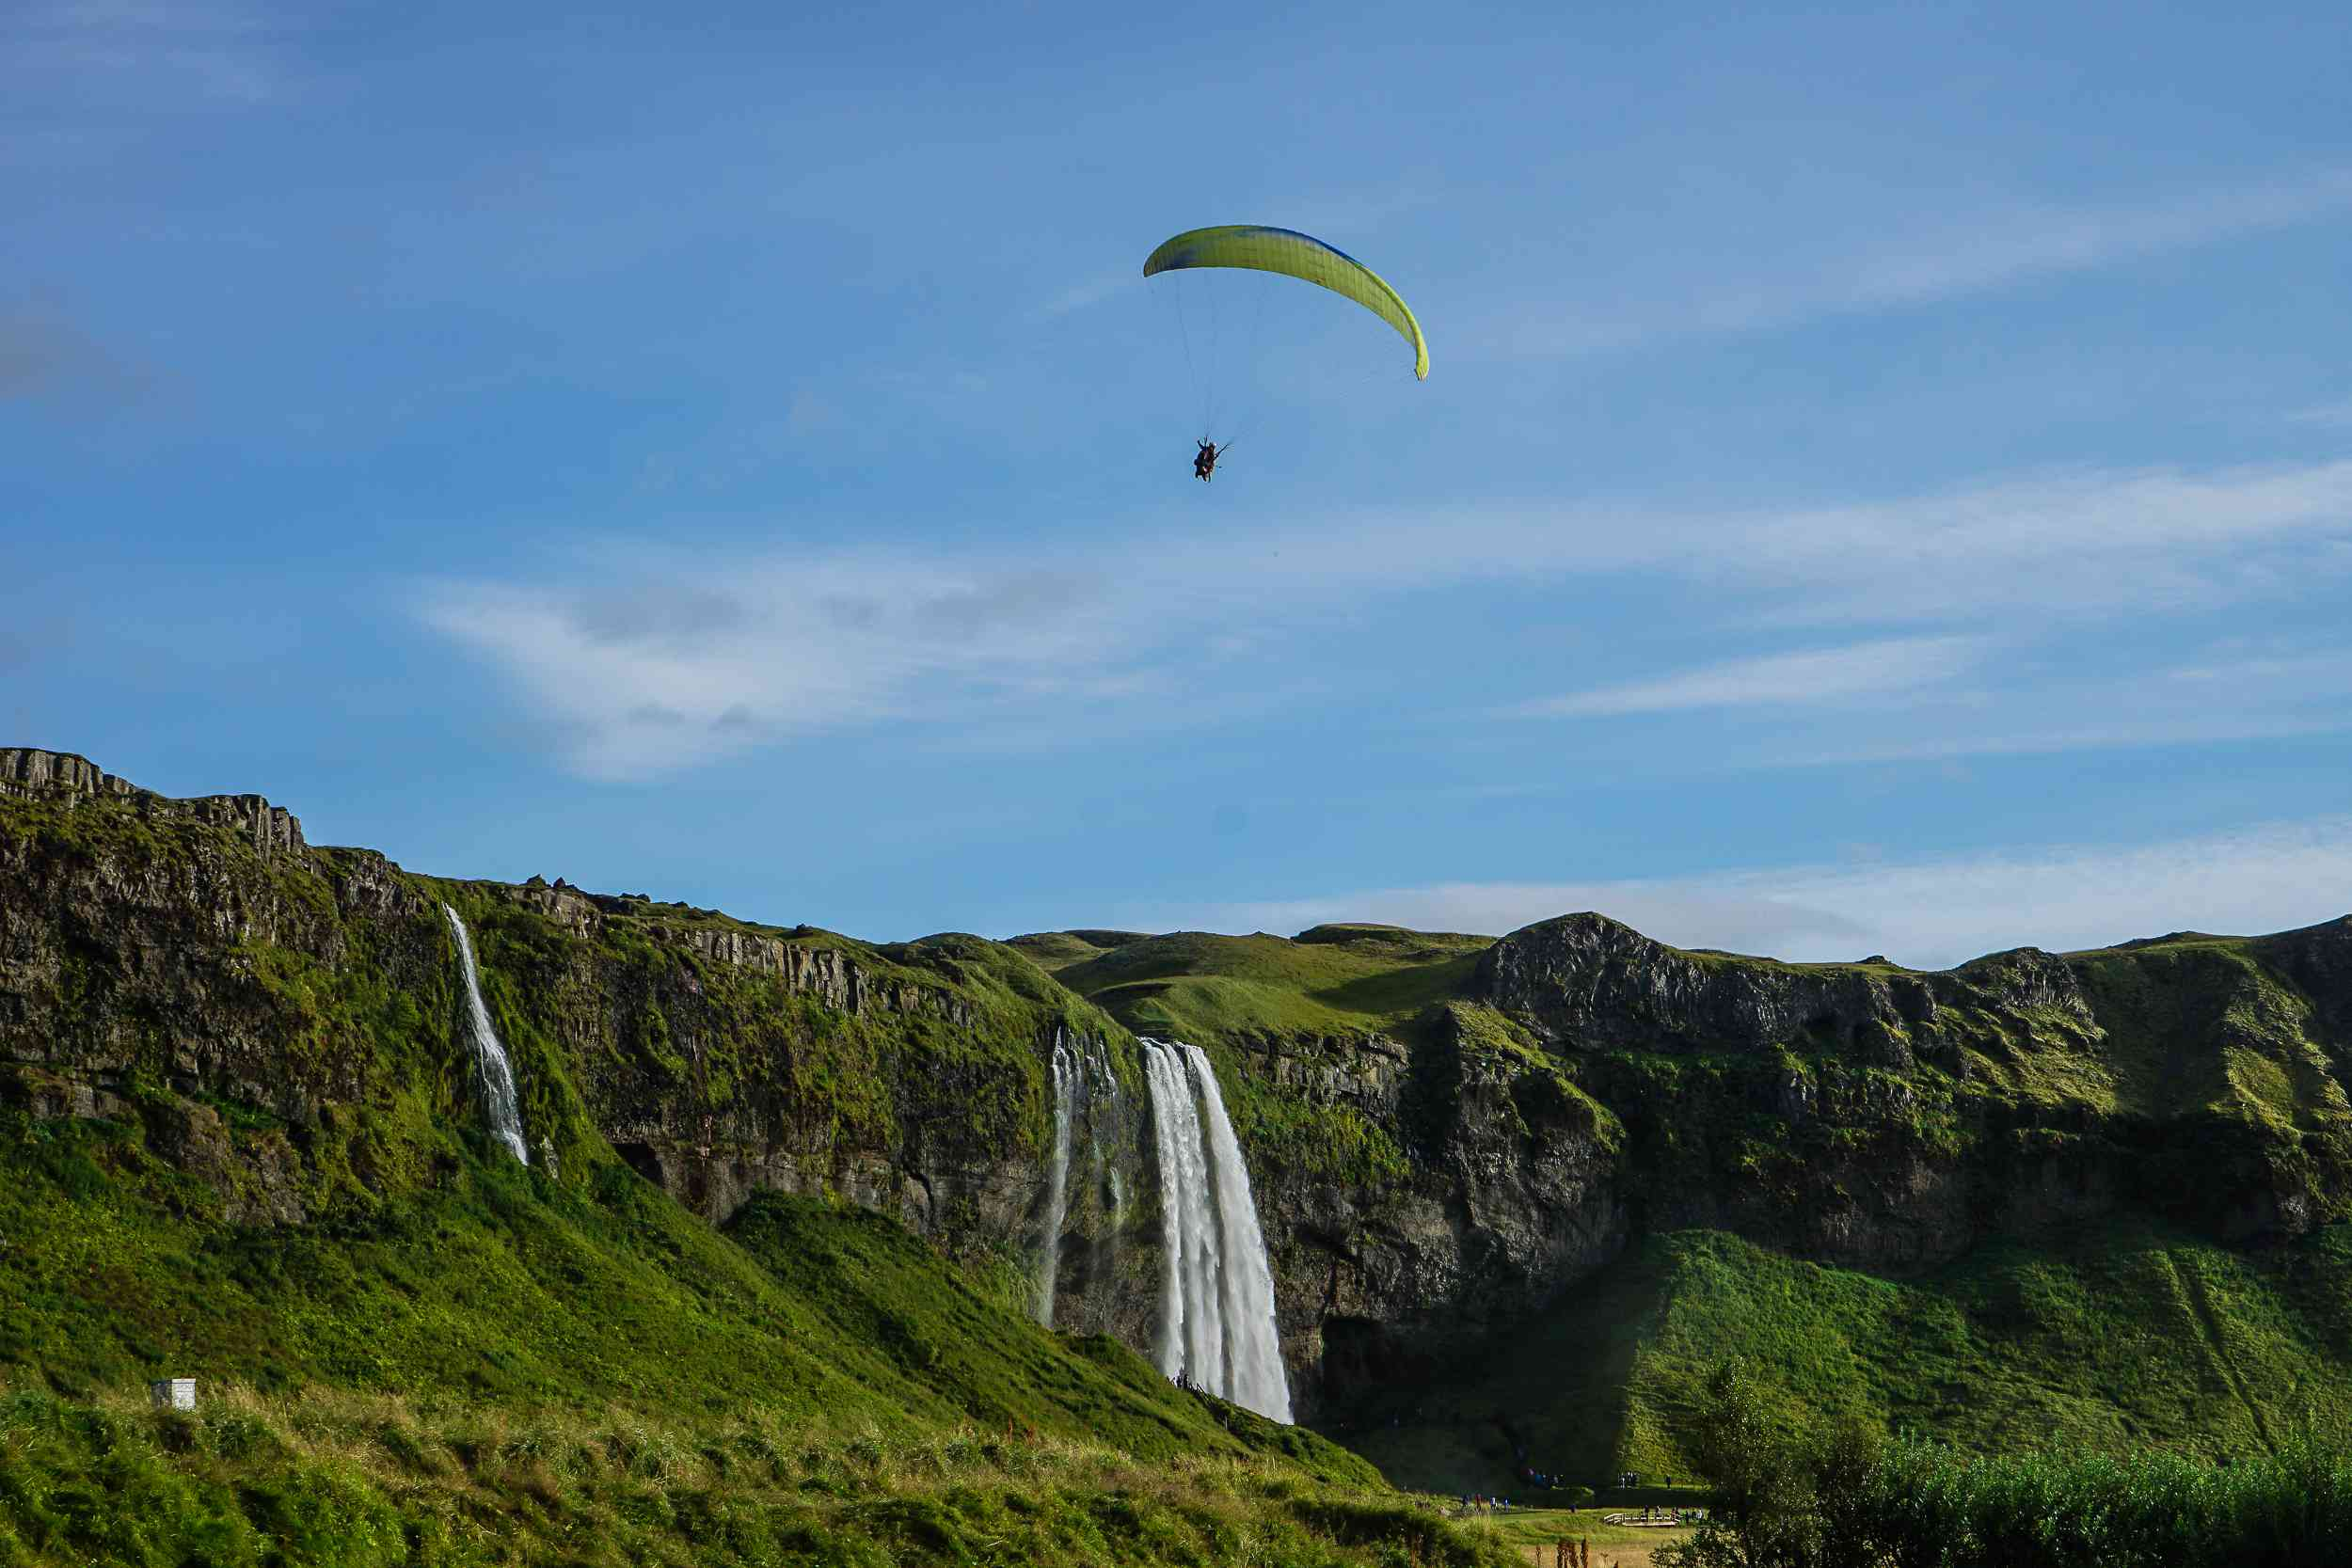 high waterfall cascading over green cliff with yellow paraglider in the sky